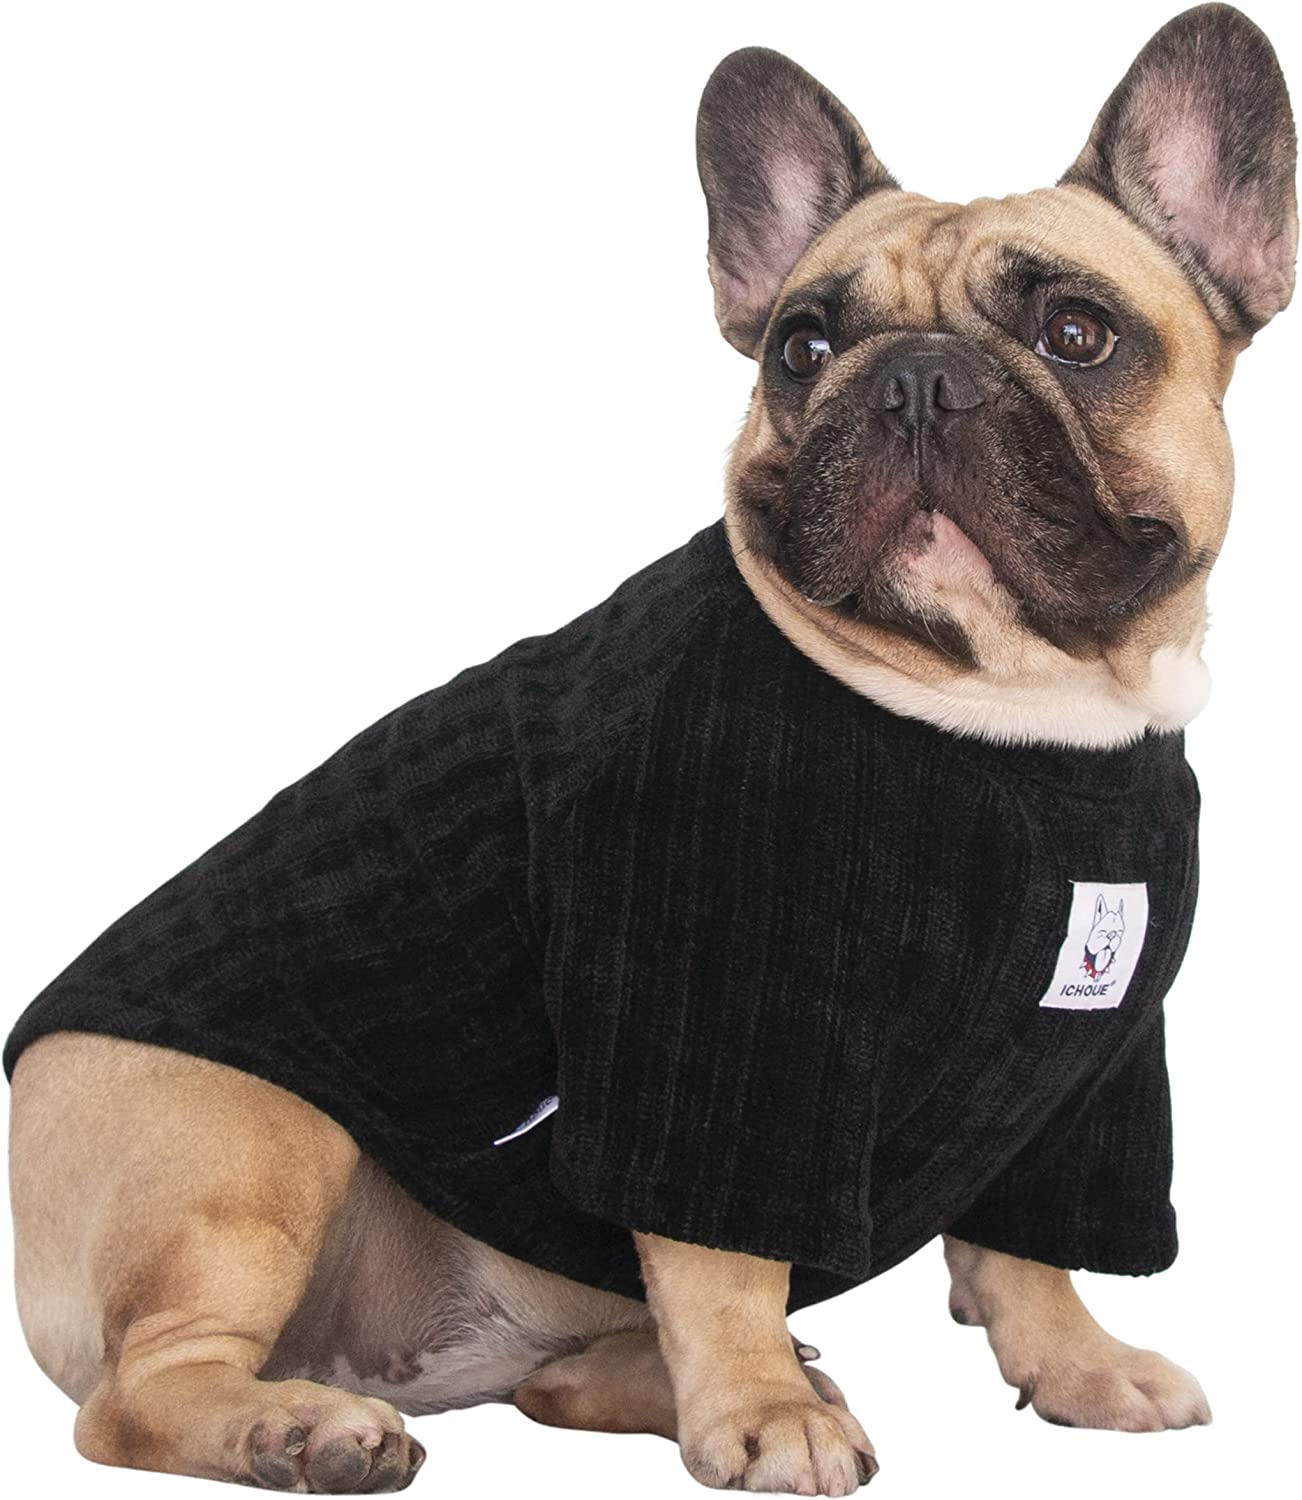 iChoue Pet Dog Winter Warm Opening large Very popular release sale Turtleneck Pullover Sweater Clothes